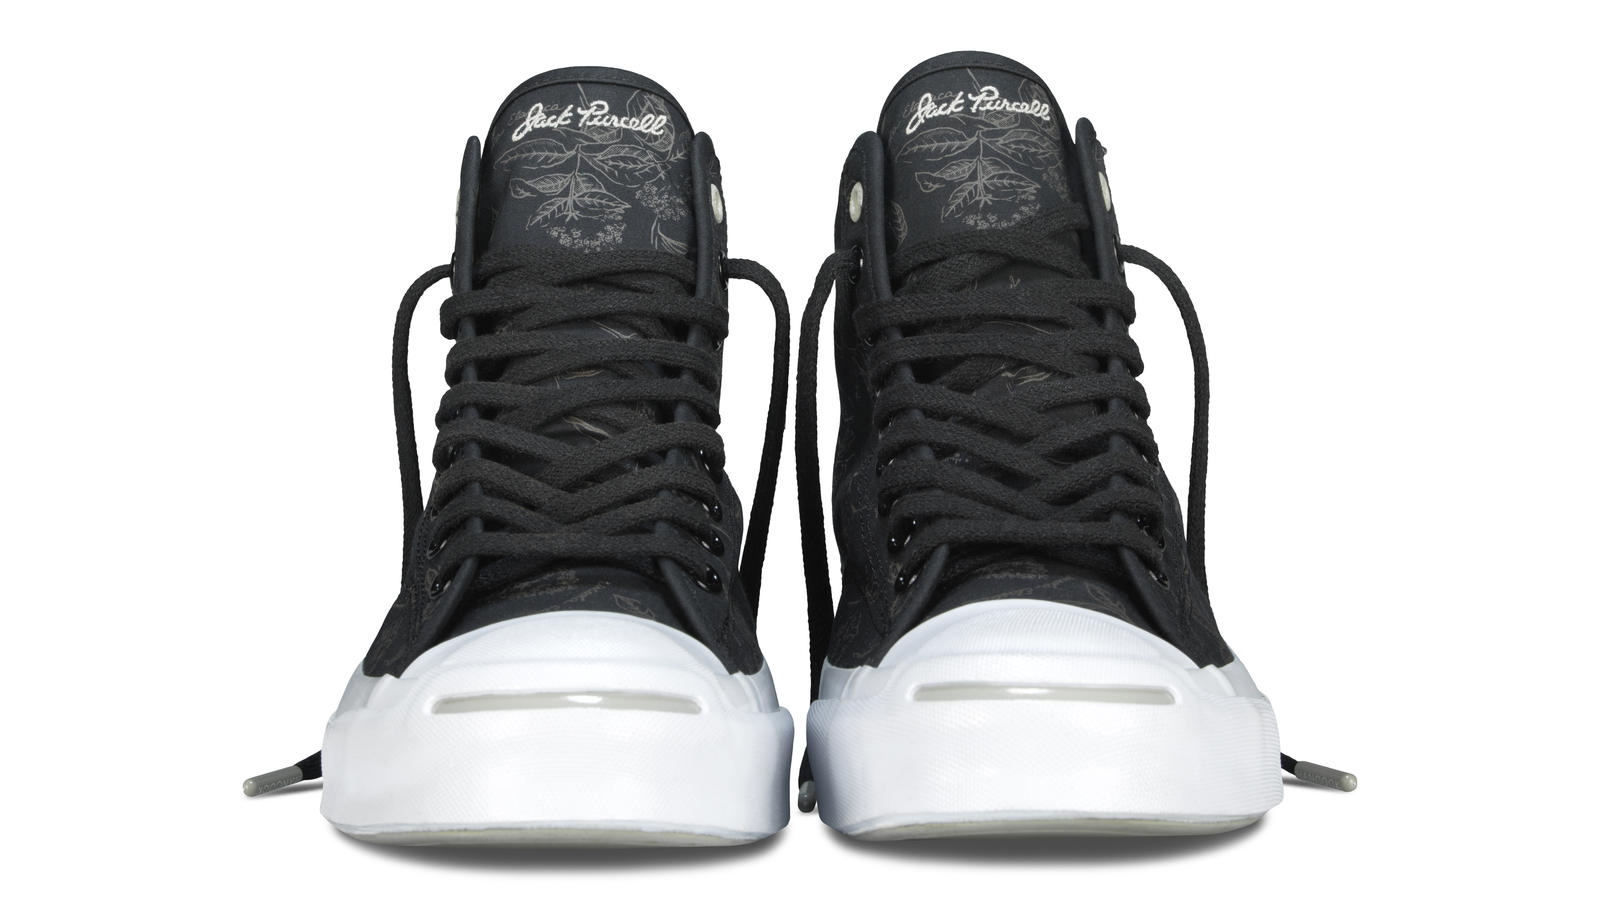 CONVERSE JACK PURCELL AND HANCOCK